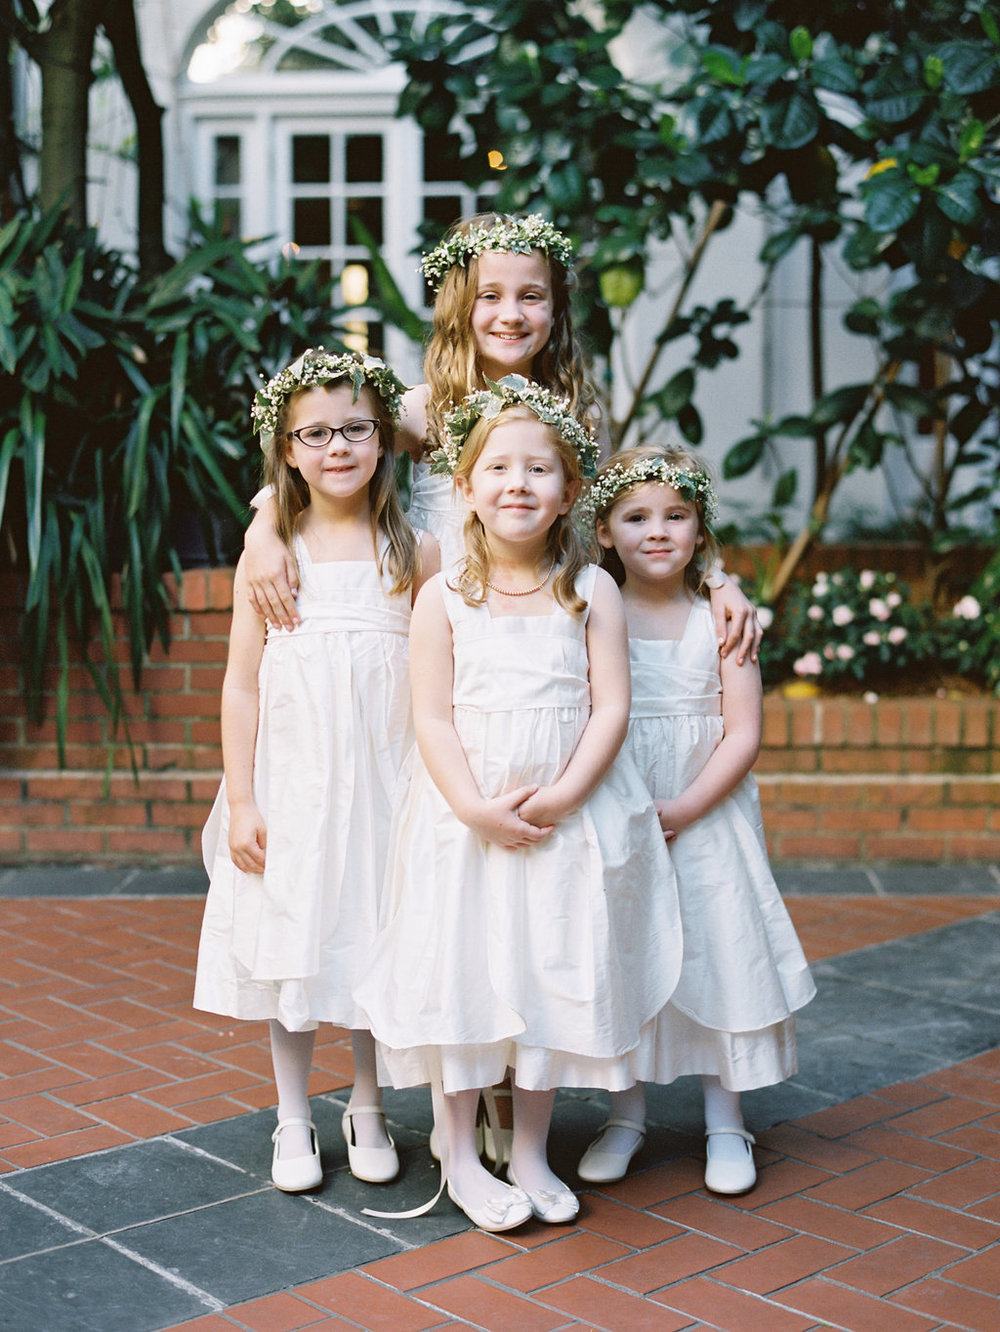 Wedding Planning | New Orleans Wedding | French Quarter Wedding | Sapphire Events | Ryan Ray Photography | White and Green Wedding | Formal Black Tie Wedding | Monique Lhuillier Dress | Flower Girls | Flower Crowns | Floral Wreaths